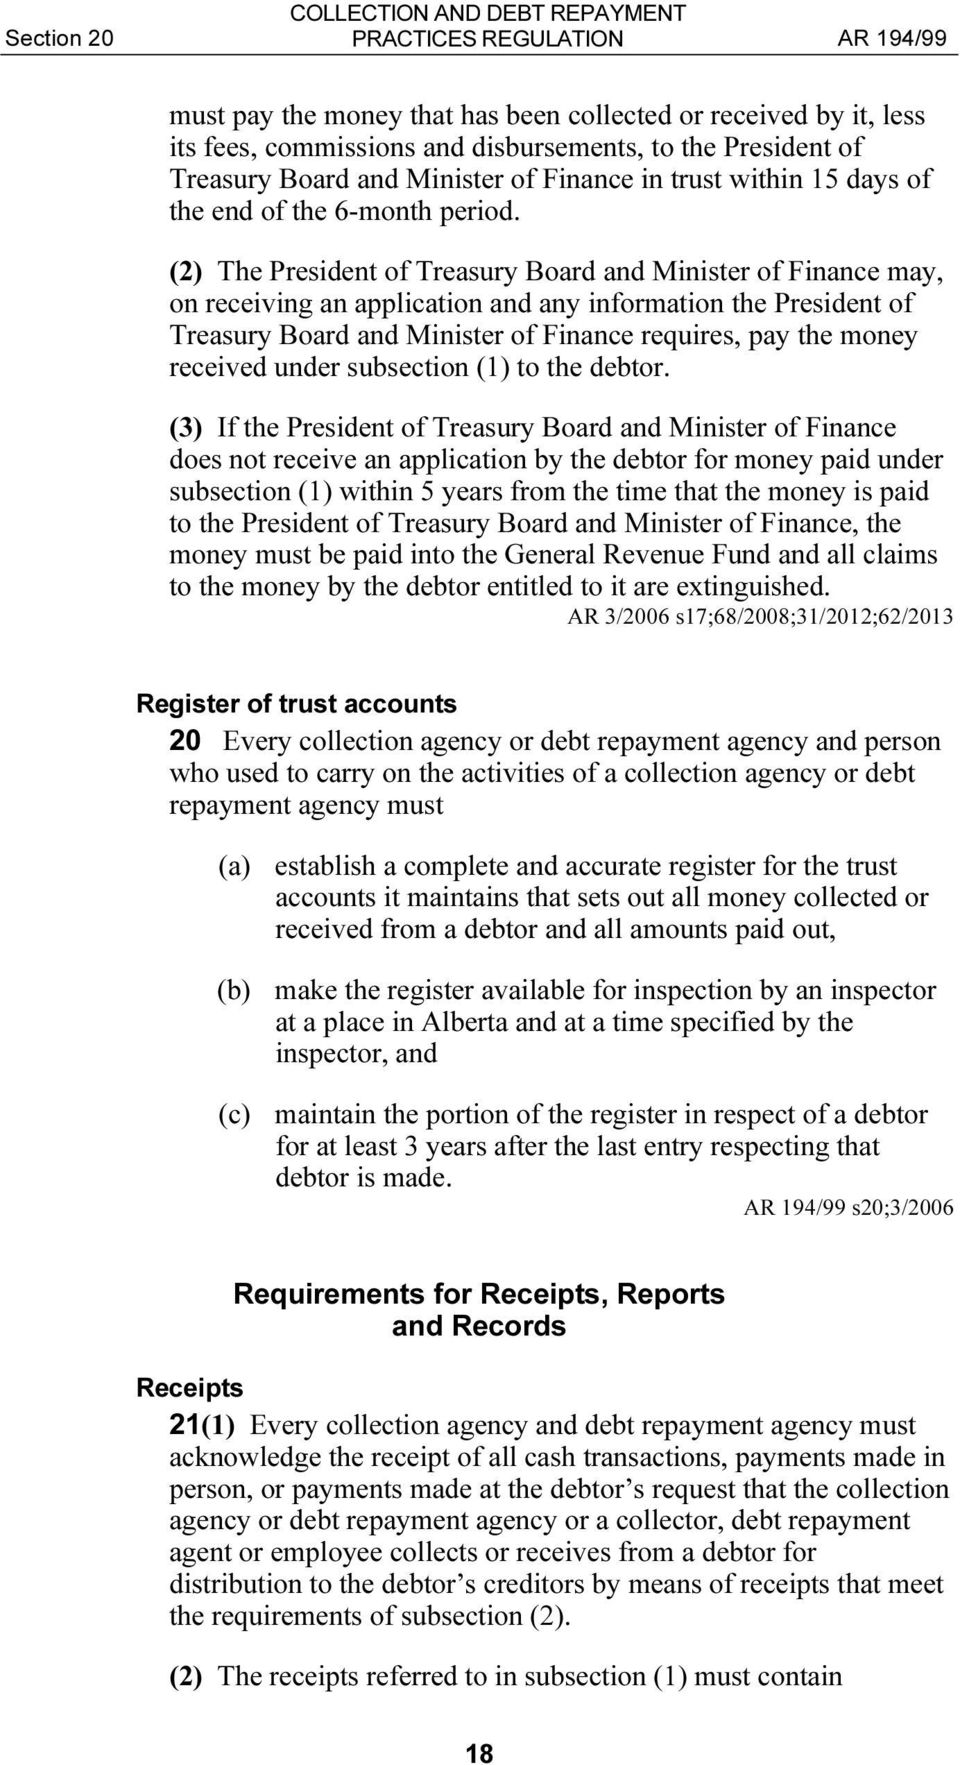 (2) The President of Treasury Board and Minister of Finance may, on receiving an application and any information the President of Treasury Board and Minister of Finance requires, pay the money